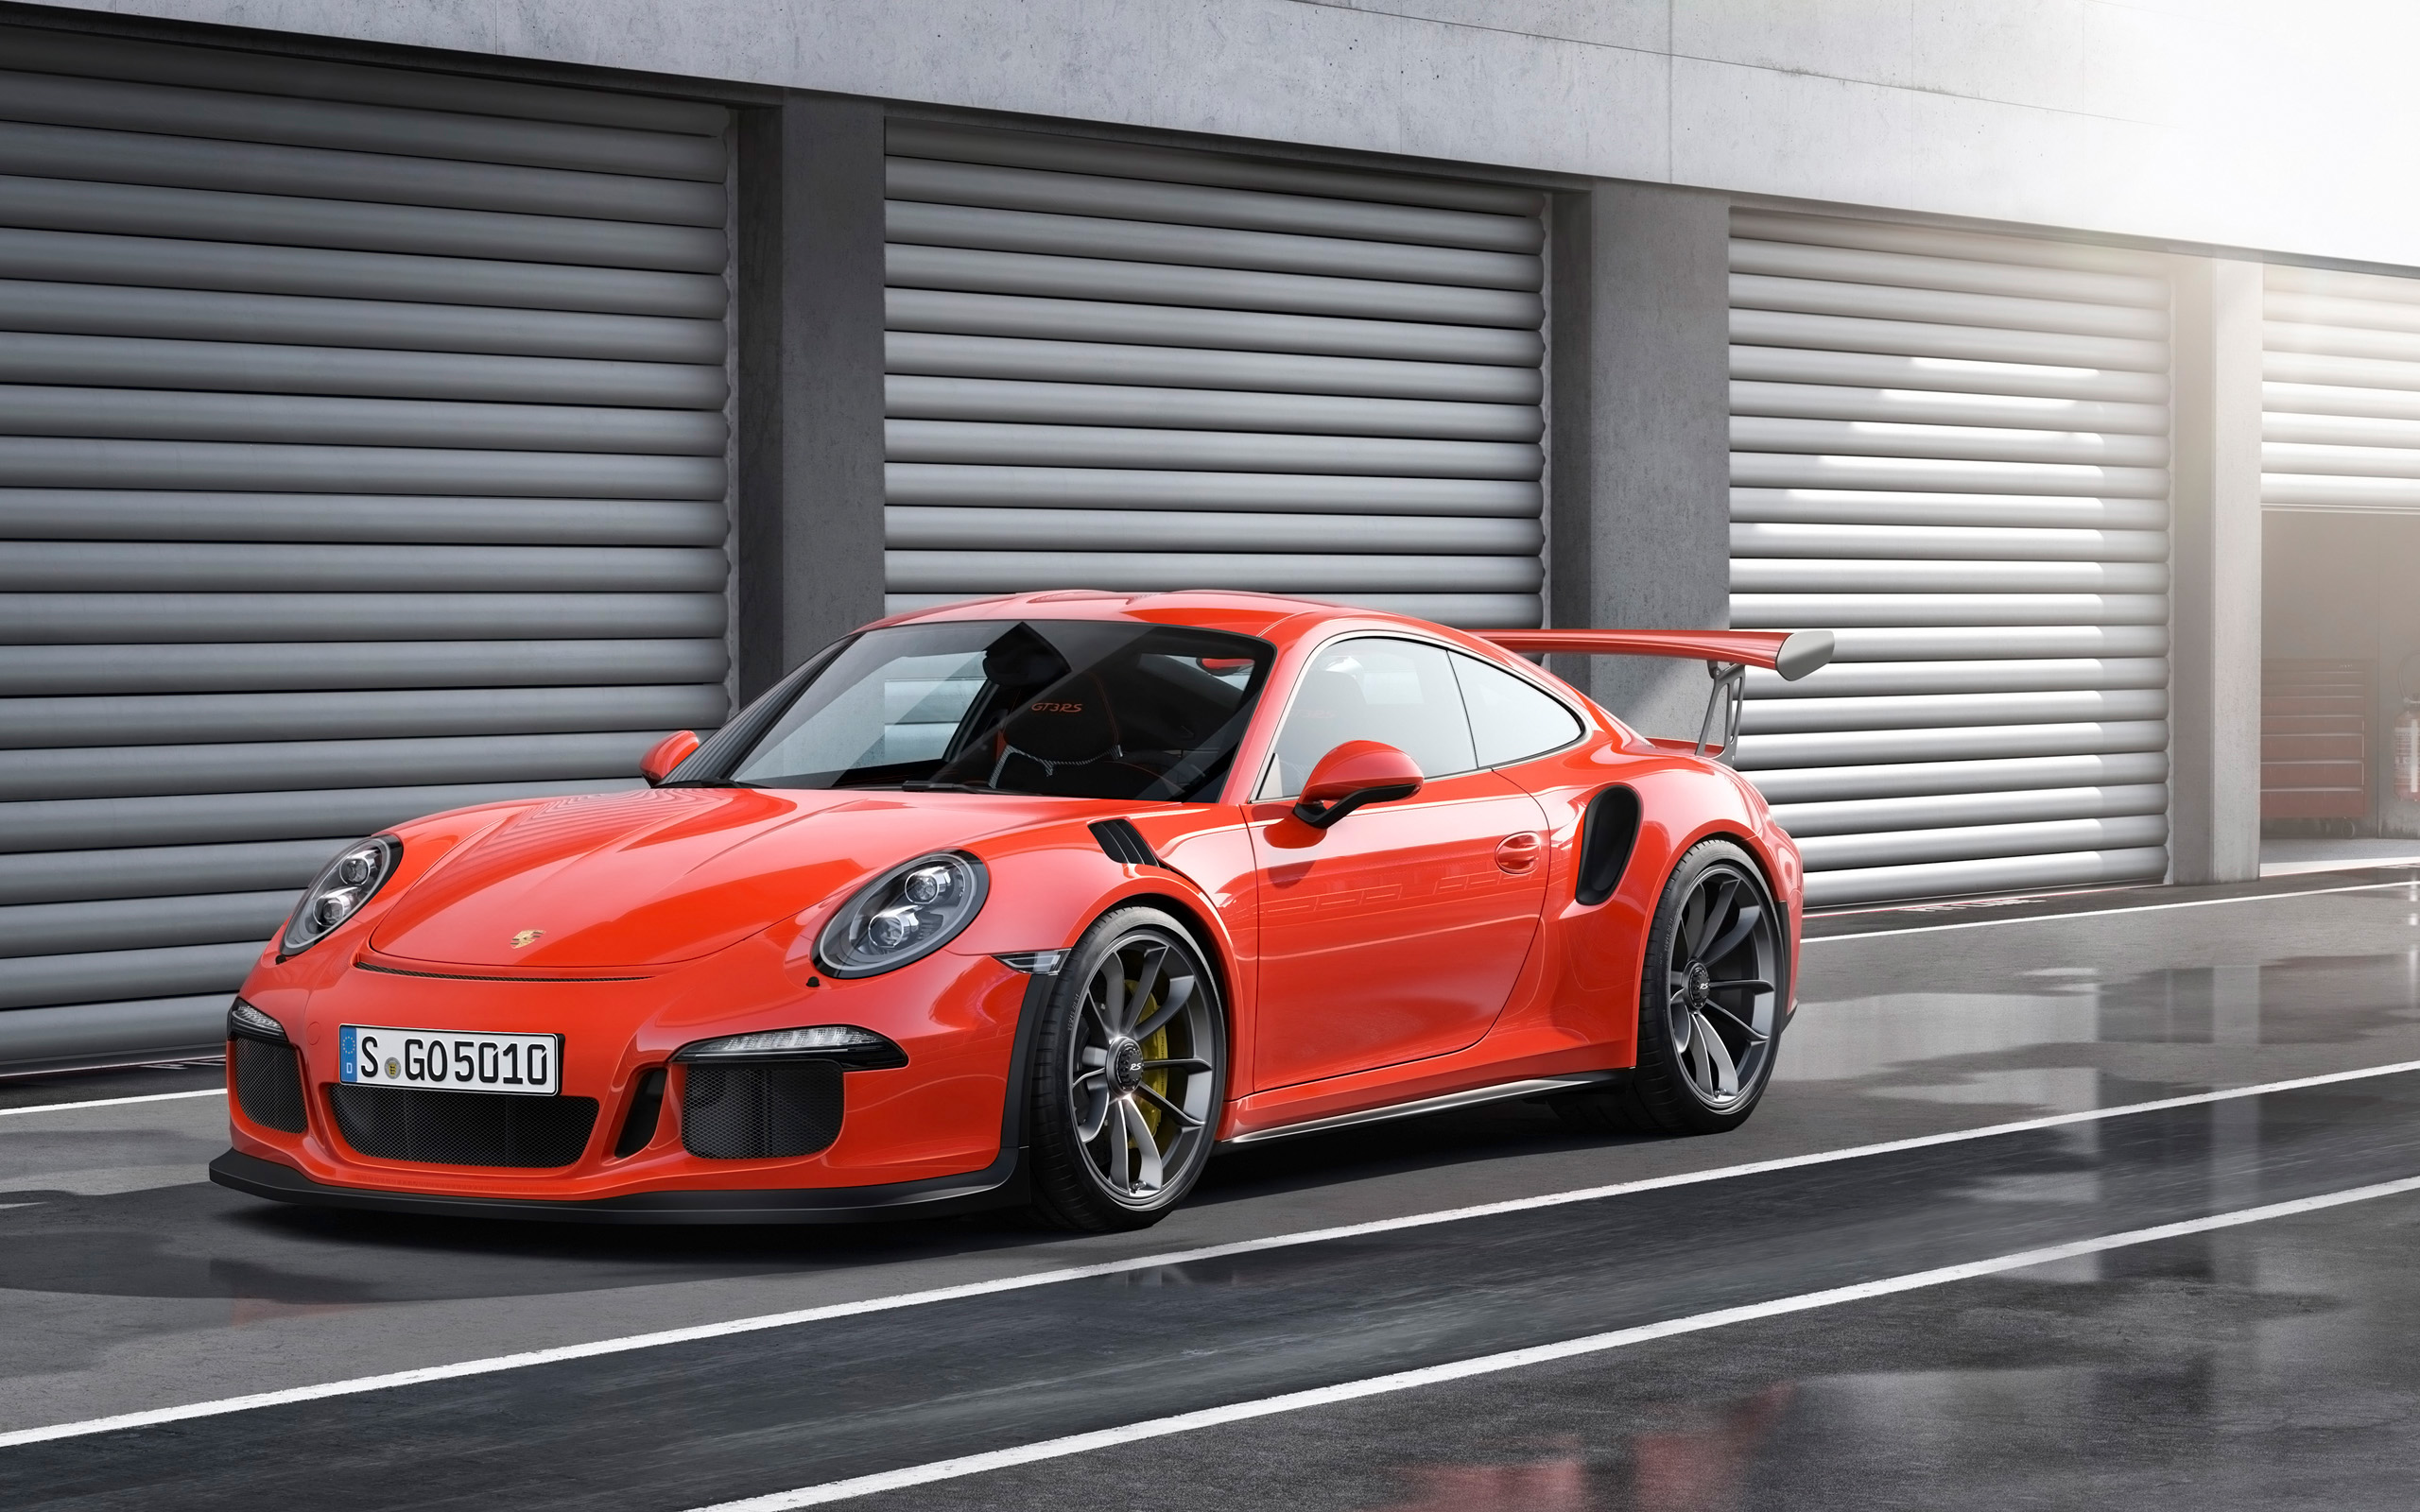 Porsche 911 GT3 Wallpapers and Background Images   stmednet 2560x1600